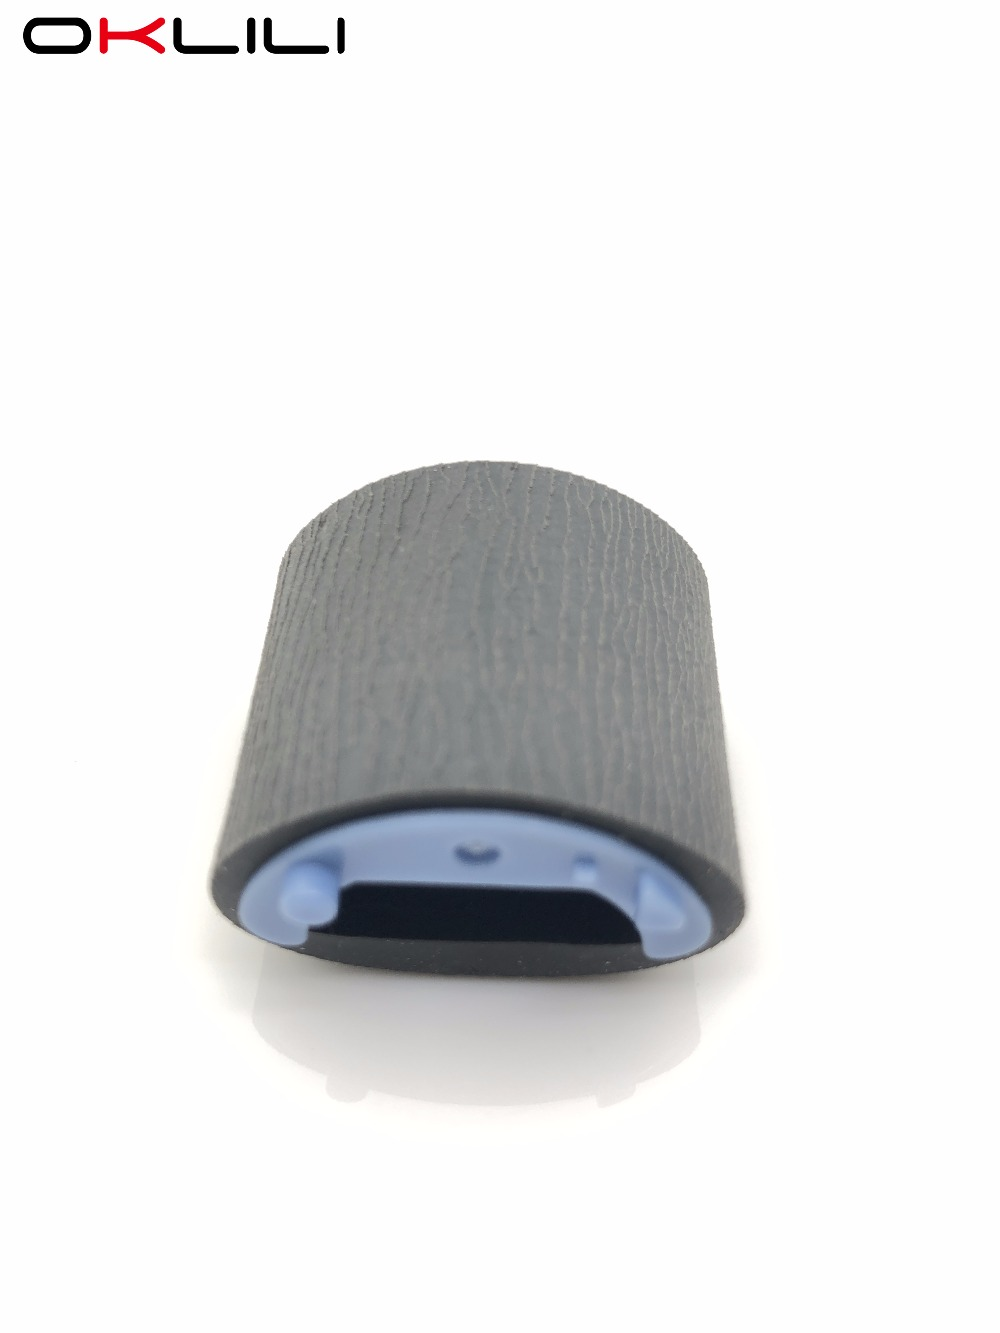 1X RL1-0266-000 RC1-2050-000 Paper Pickup Roller for <font><b>HP</b></font> <font><b>1010</b></font> 1012 1015 1018 1020 1022 3015 3020 3030 3050 3052 3055 M1005 M1319 image